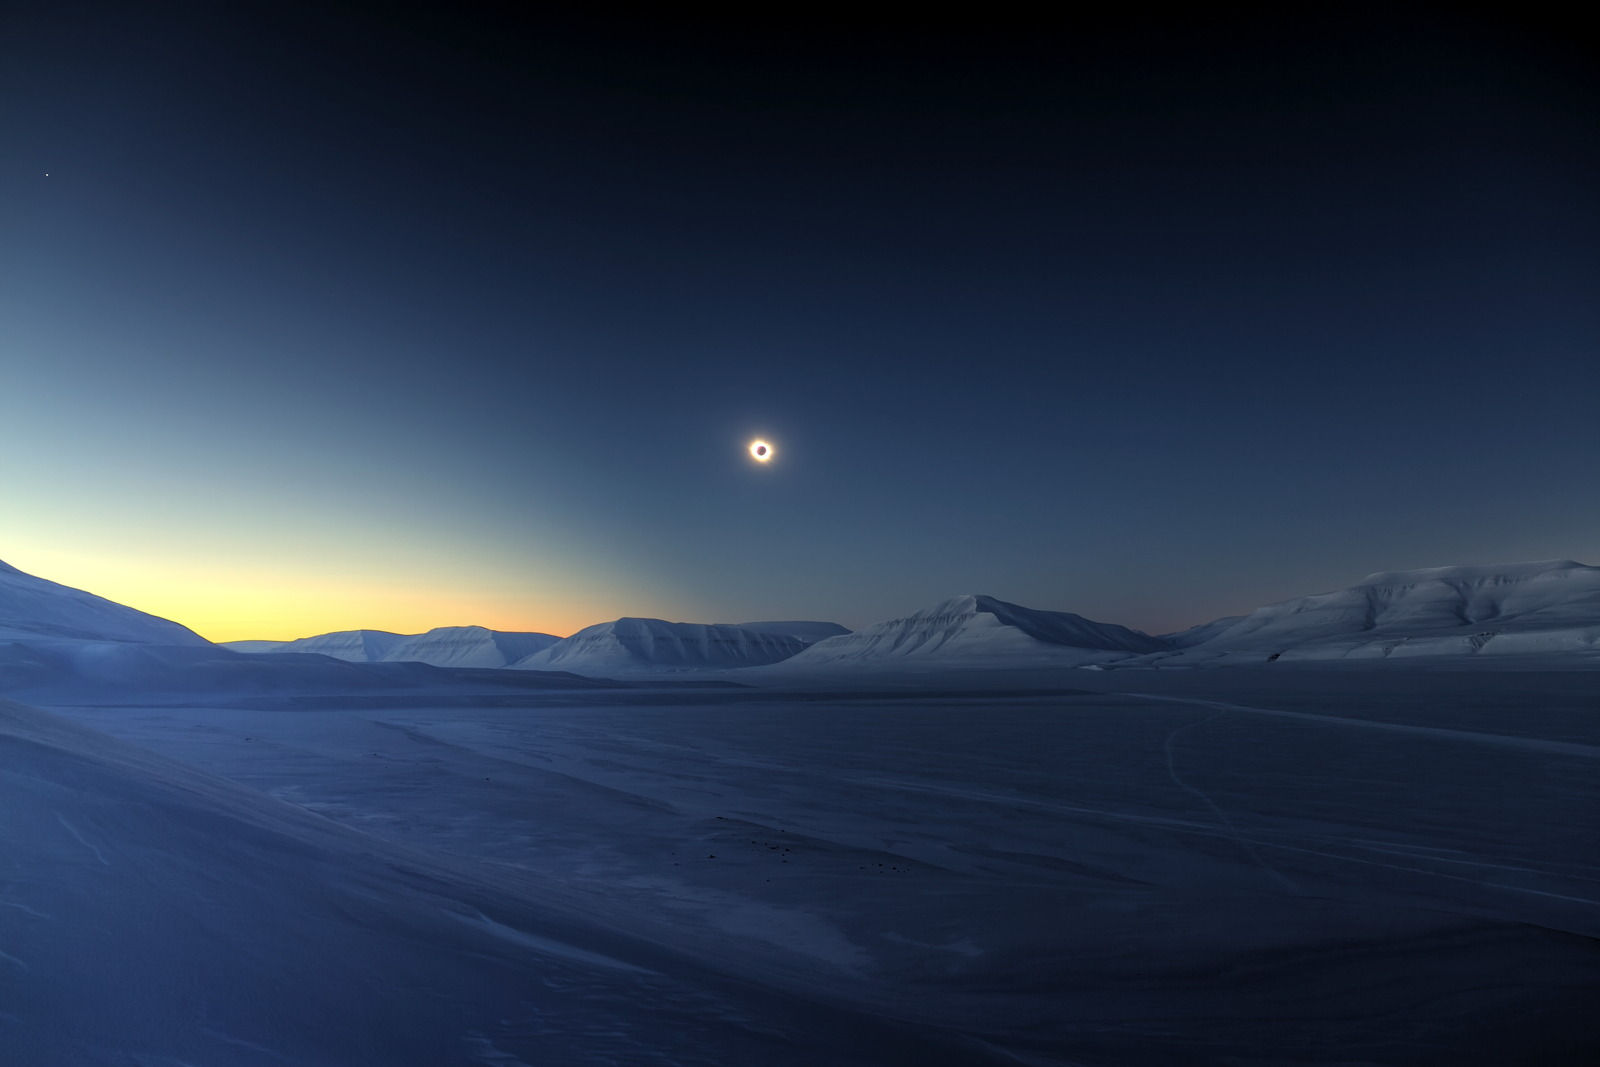 eclipse-totality-sassendalen-jamet